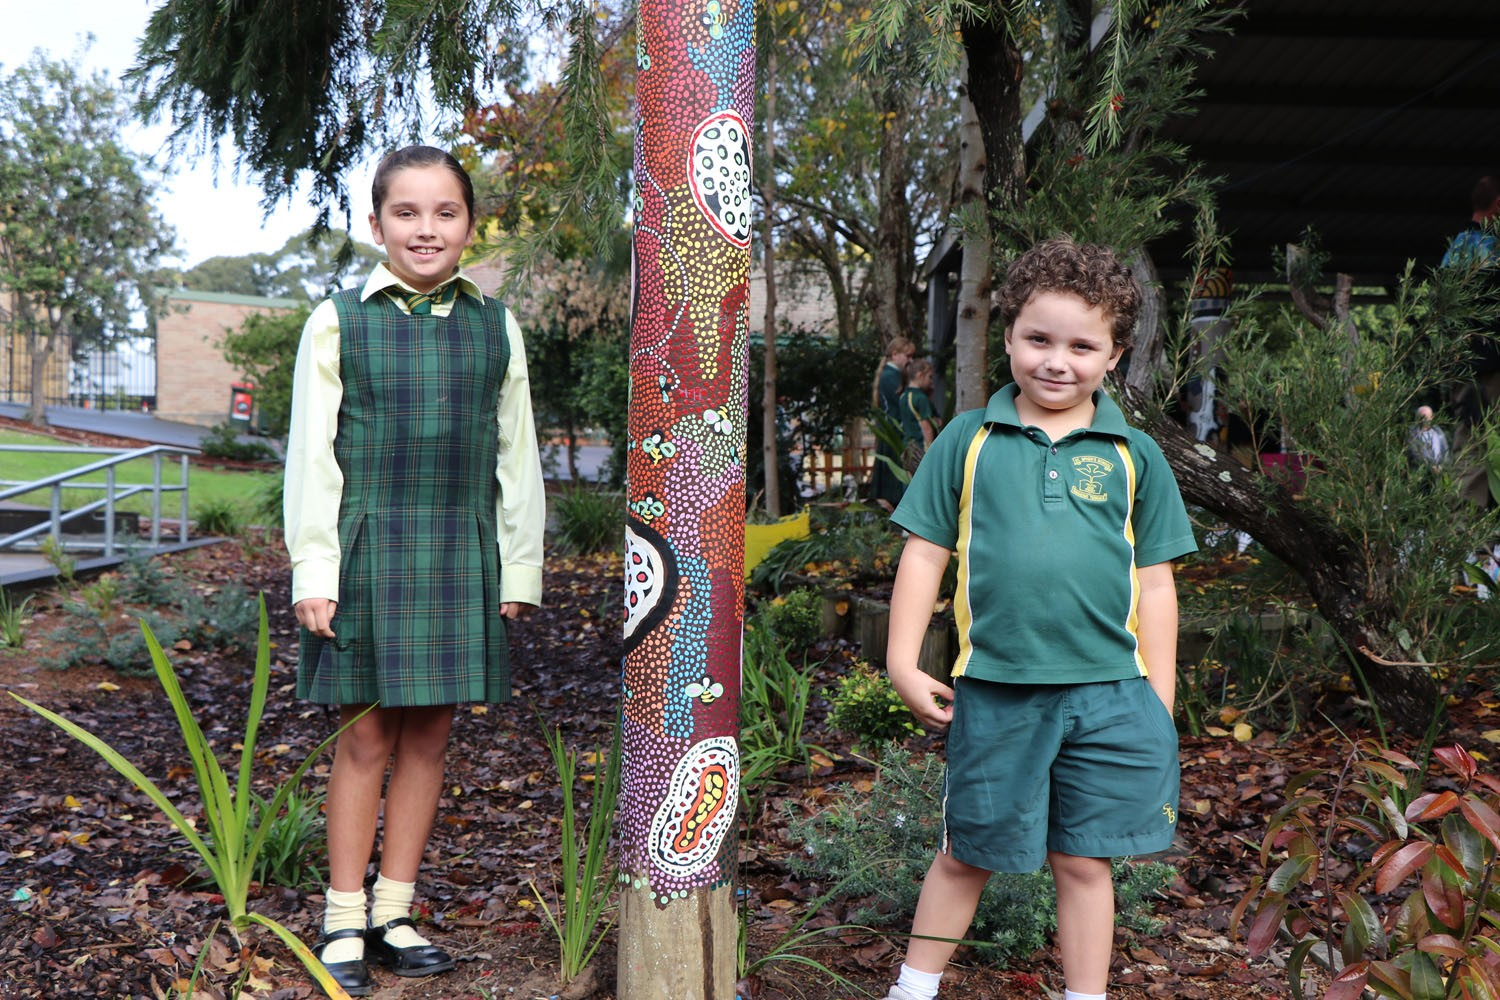 Image:GALLERY: St Brigid's officially reveals its Cultural Garden